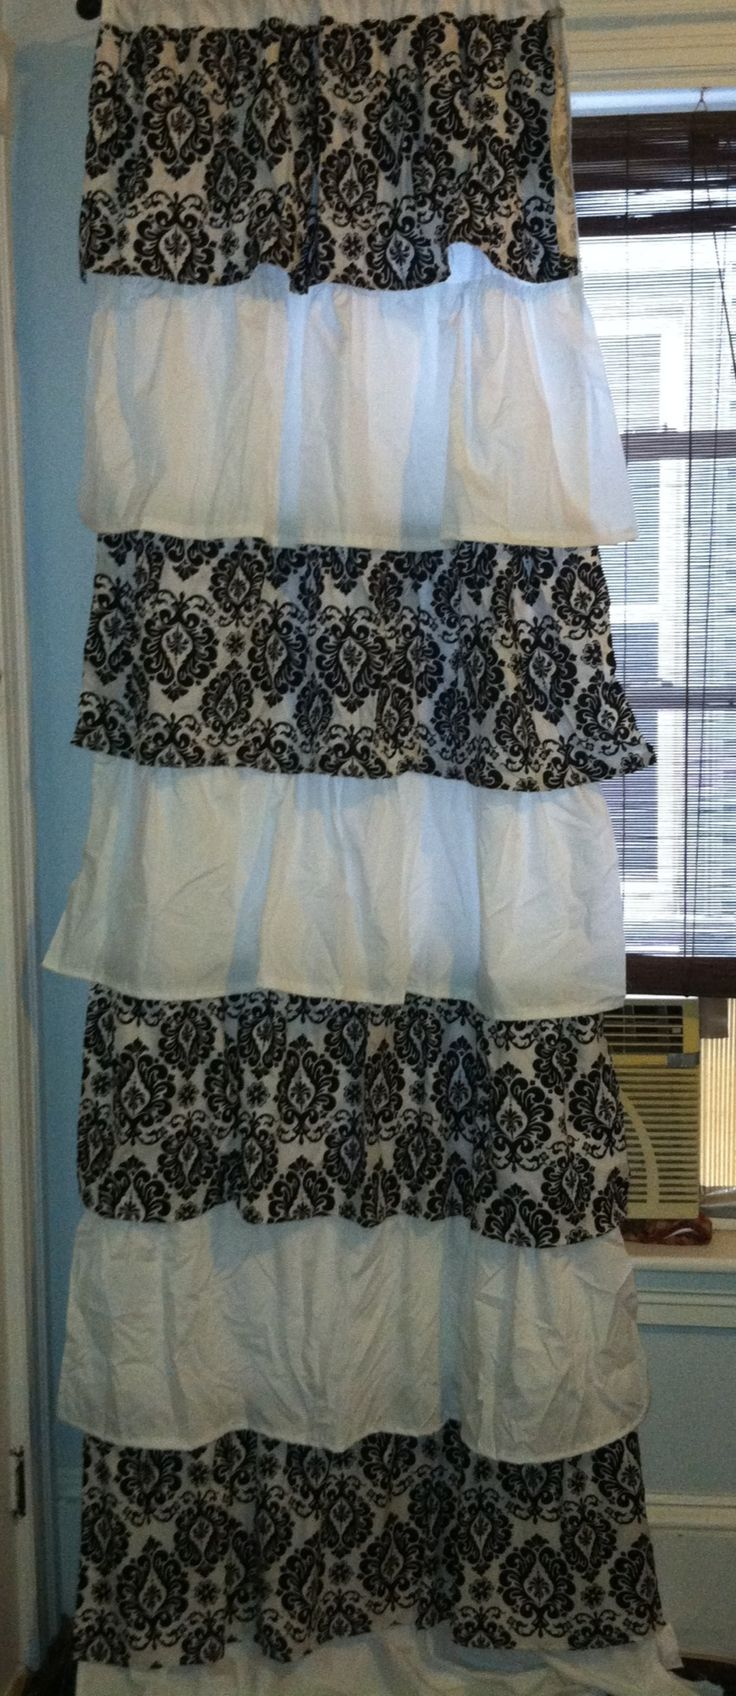 Damask bedroom curtains - Damask And White Ruffled Curtains For My Paris Theme Bedroom